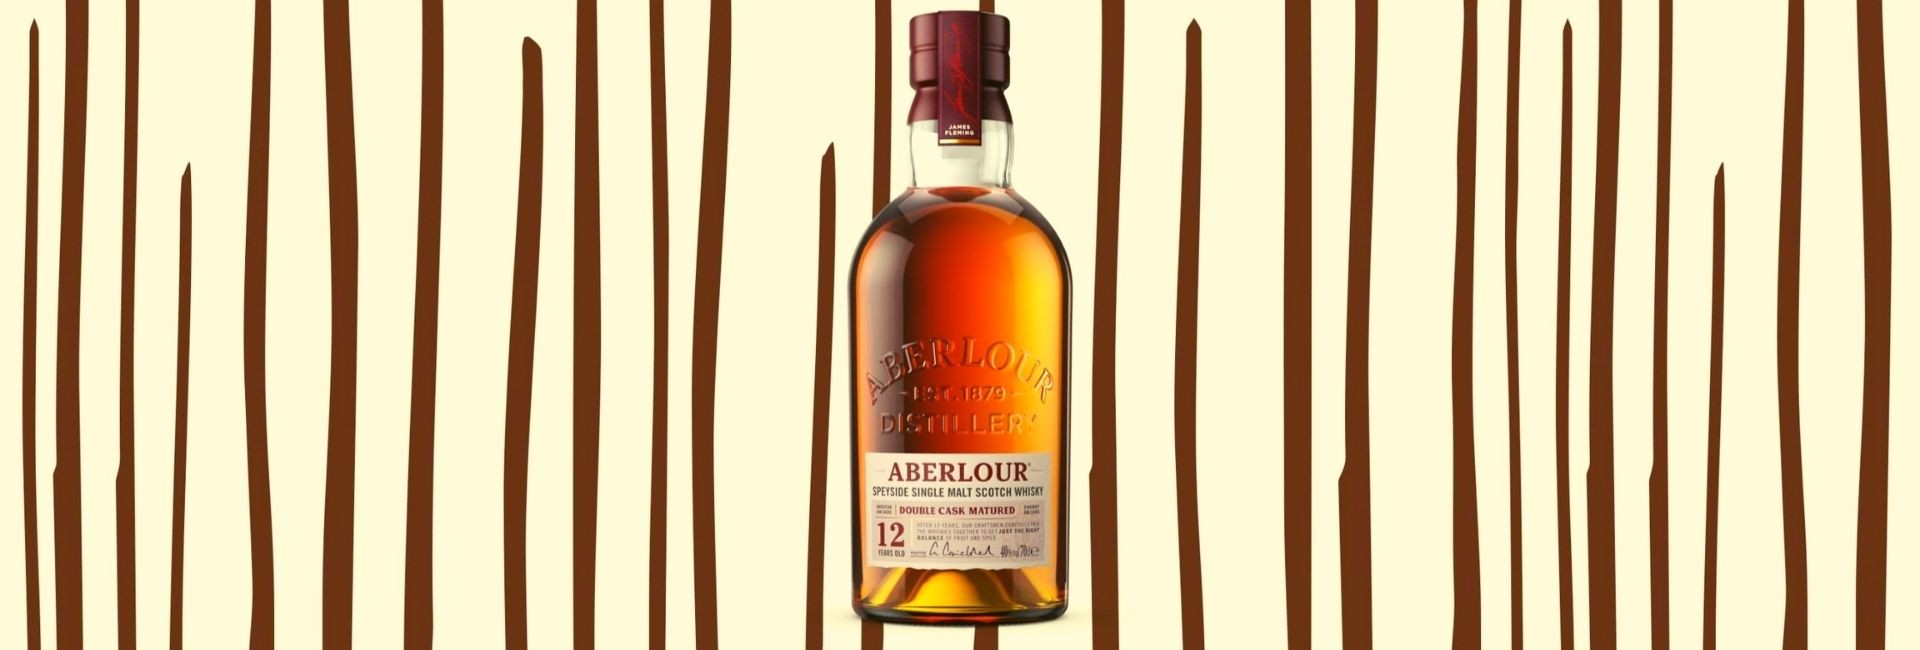 Aberlour 12 Year Old Whisky Review